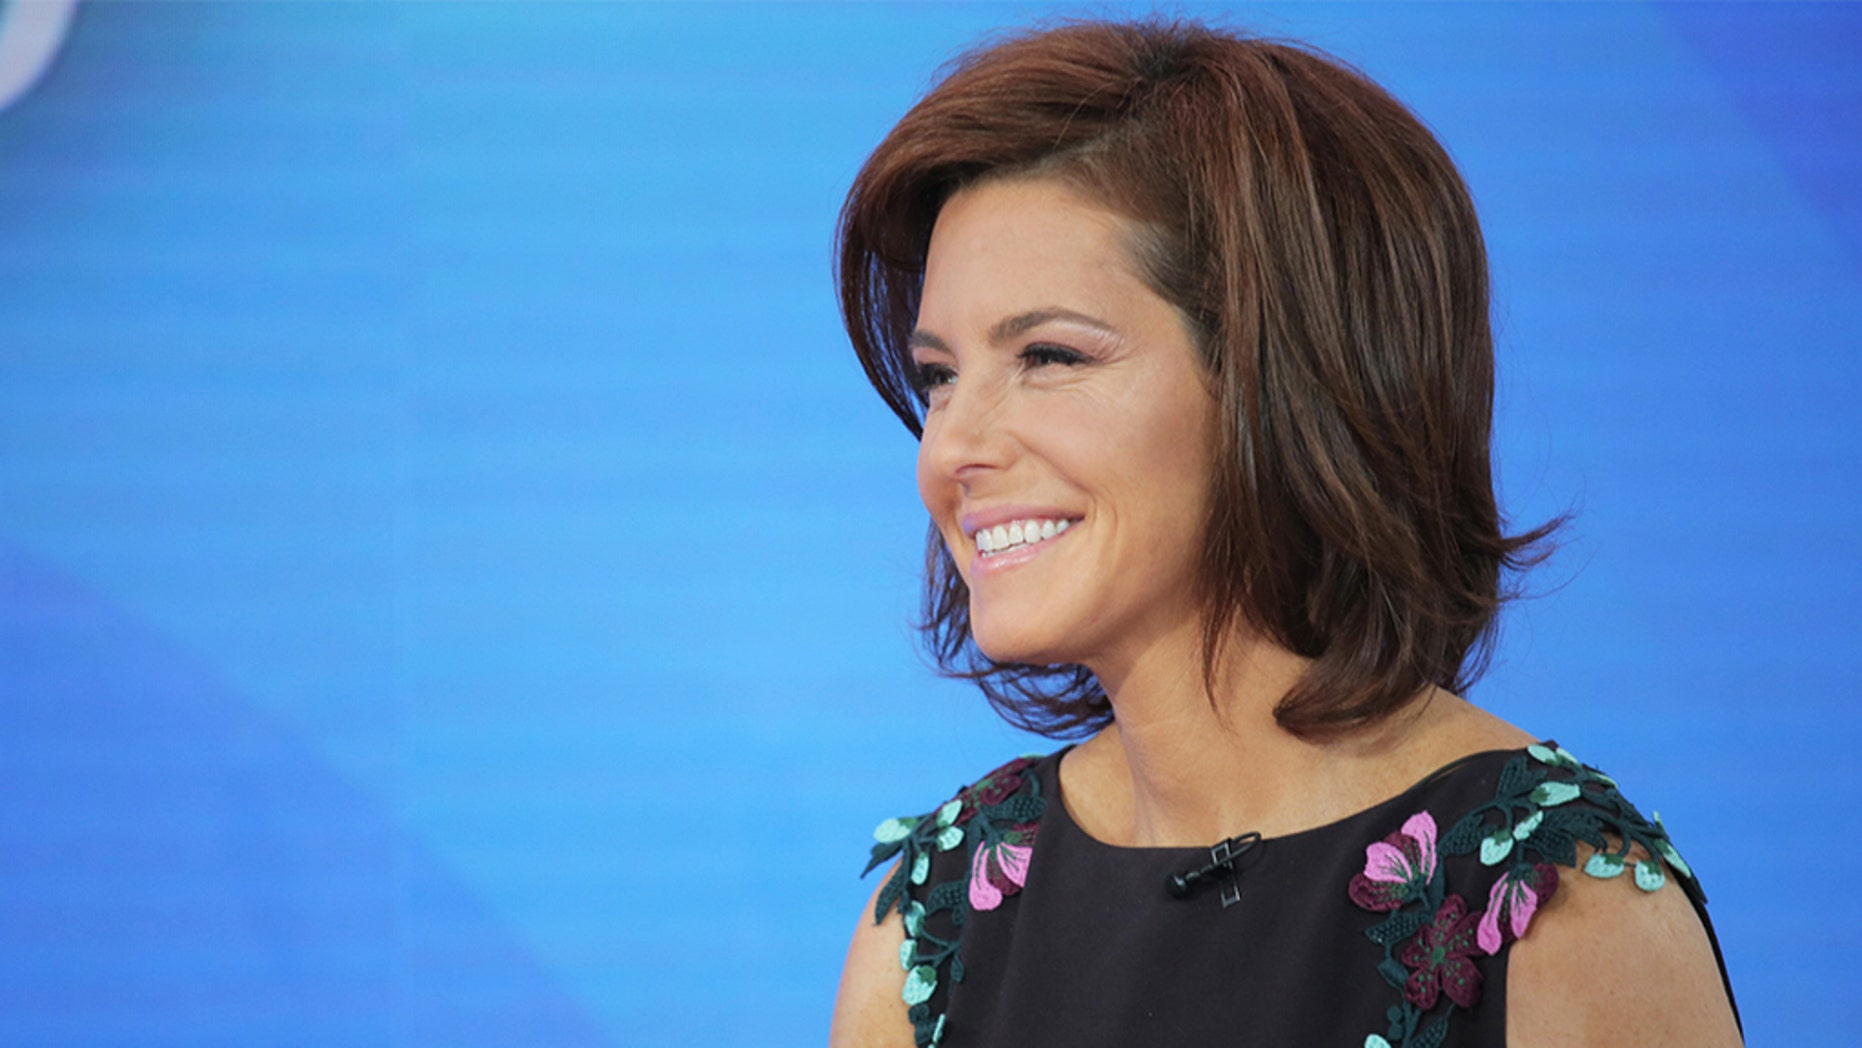 """MSNBC anchor Stephanie Ruhle questioned whether President Trump could be reported to the authorities as a """"security threat"""" following his interview with ABC News'George Stephanopoulos."""